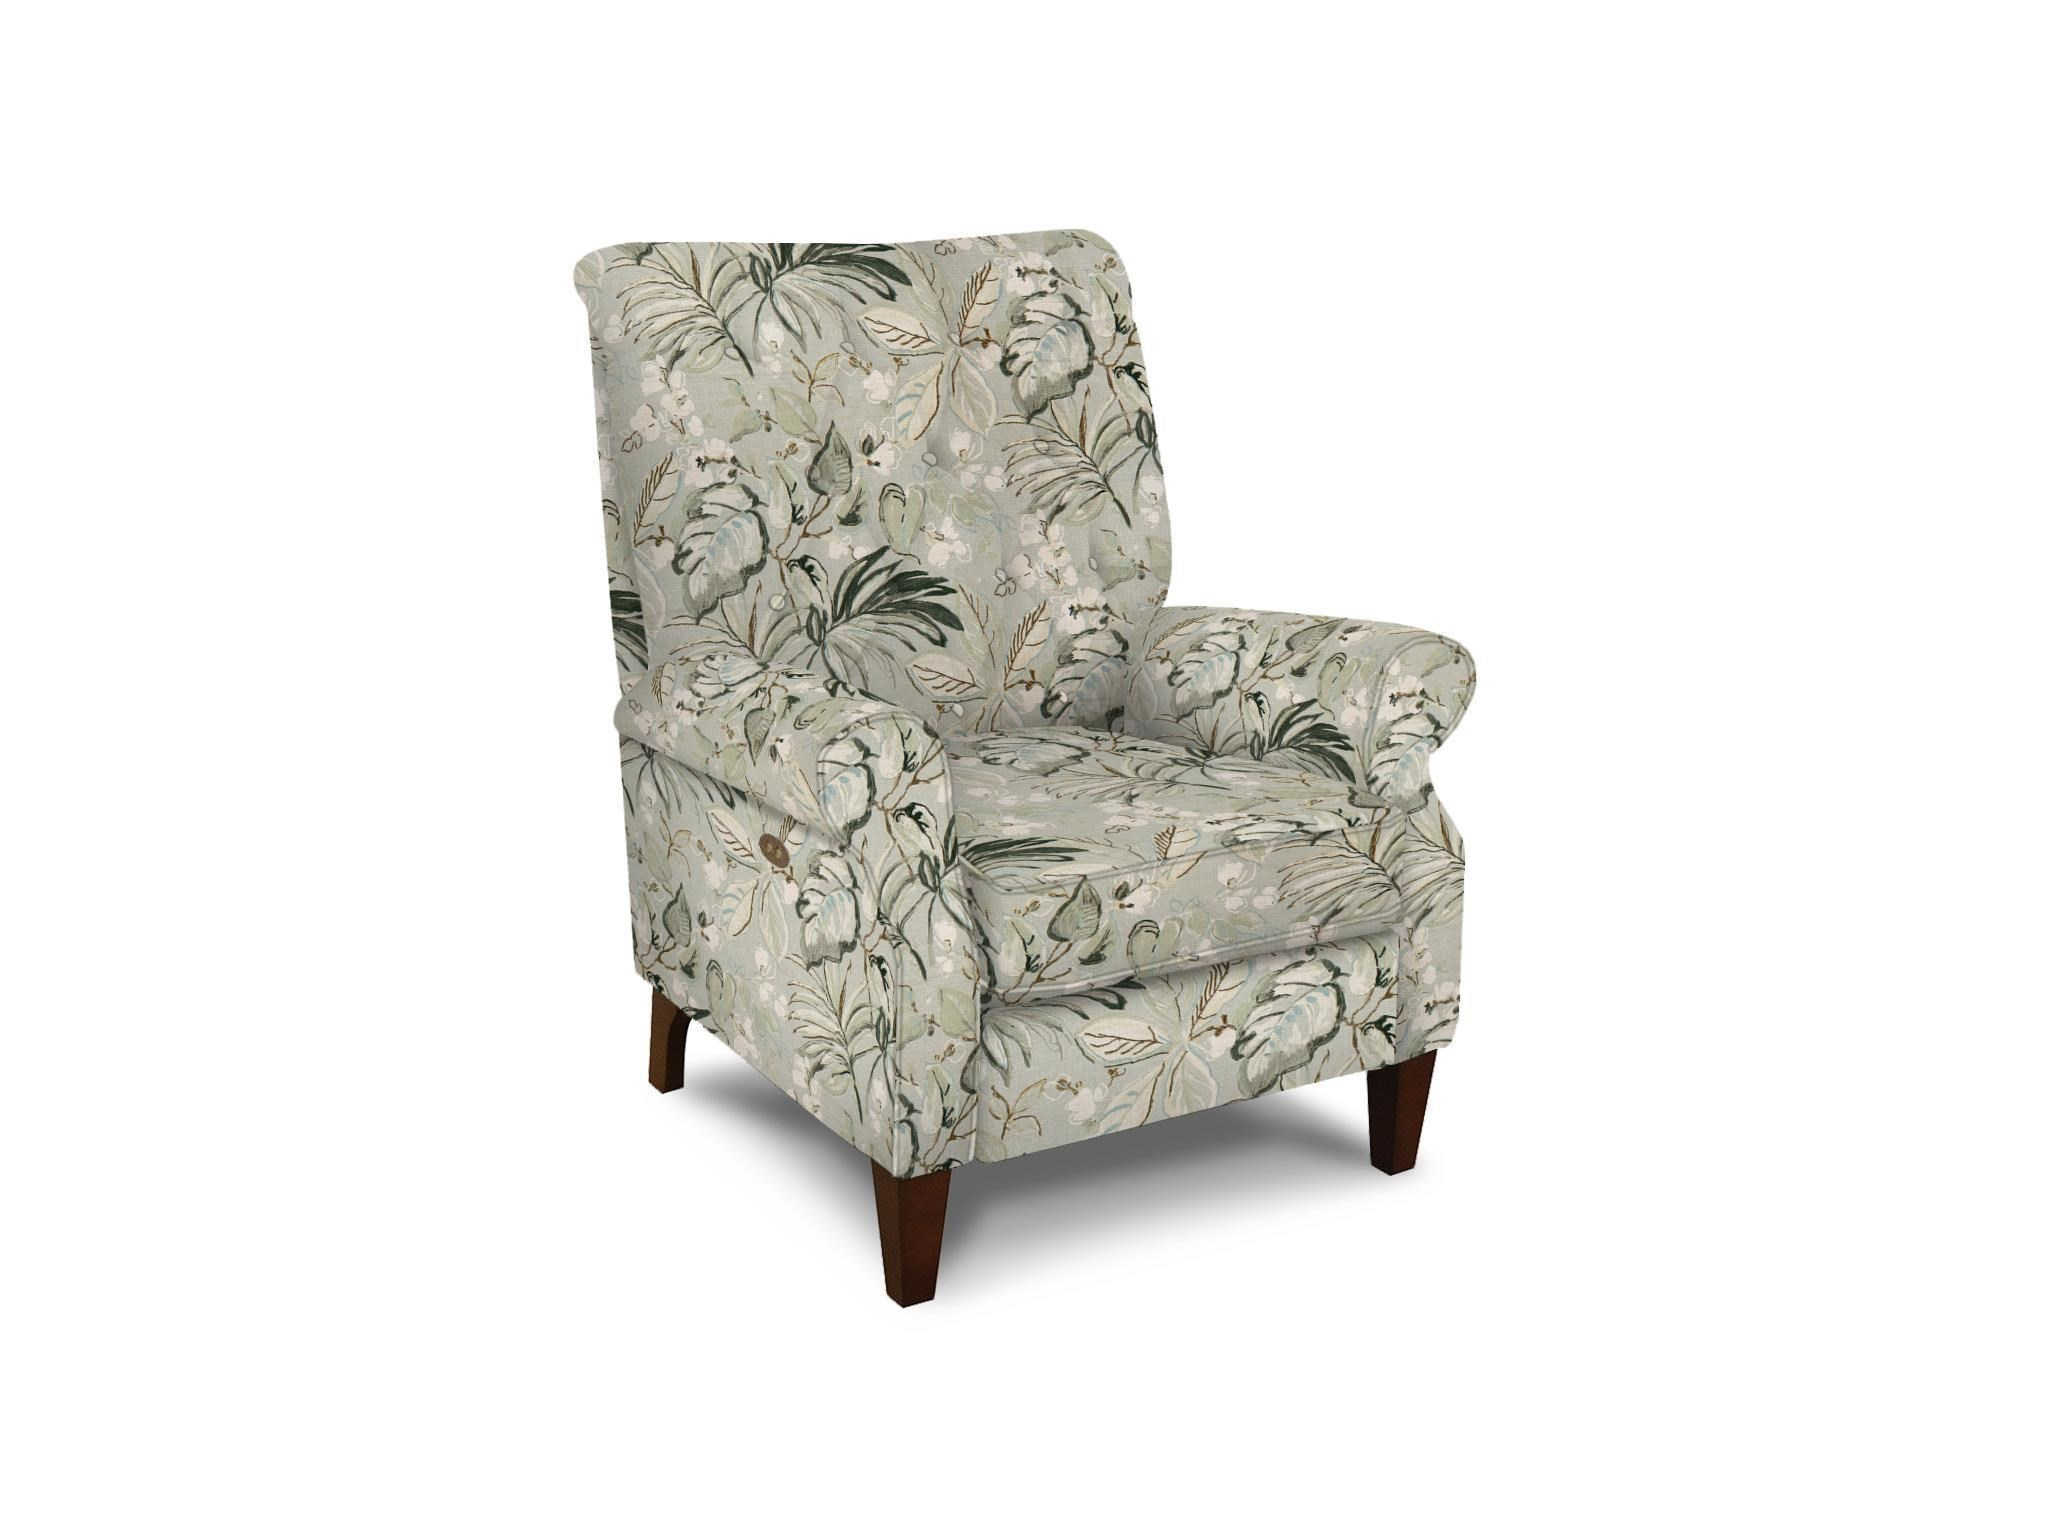 Tufted High Back Chair Stella Push Back Chair With Tufted Back By England At Vandrie Home Furnishings